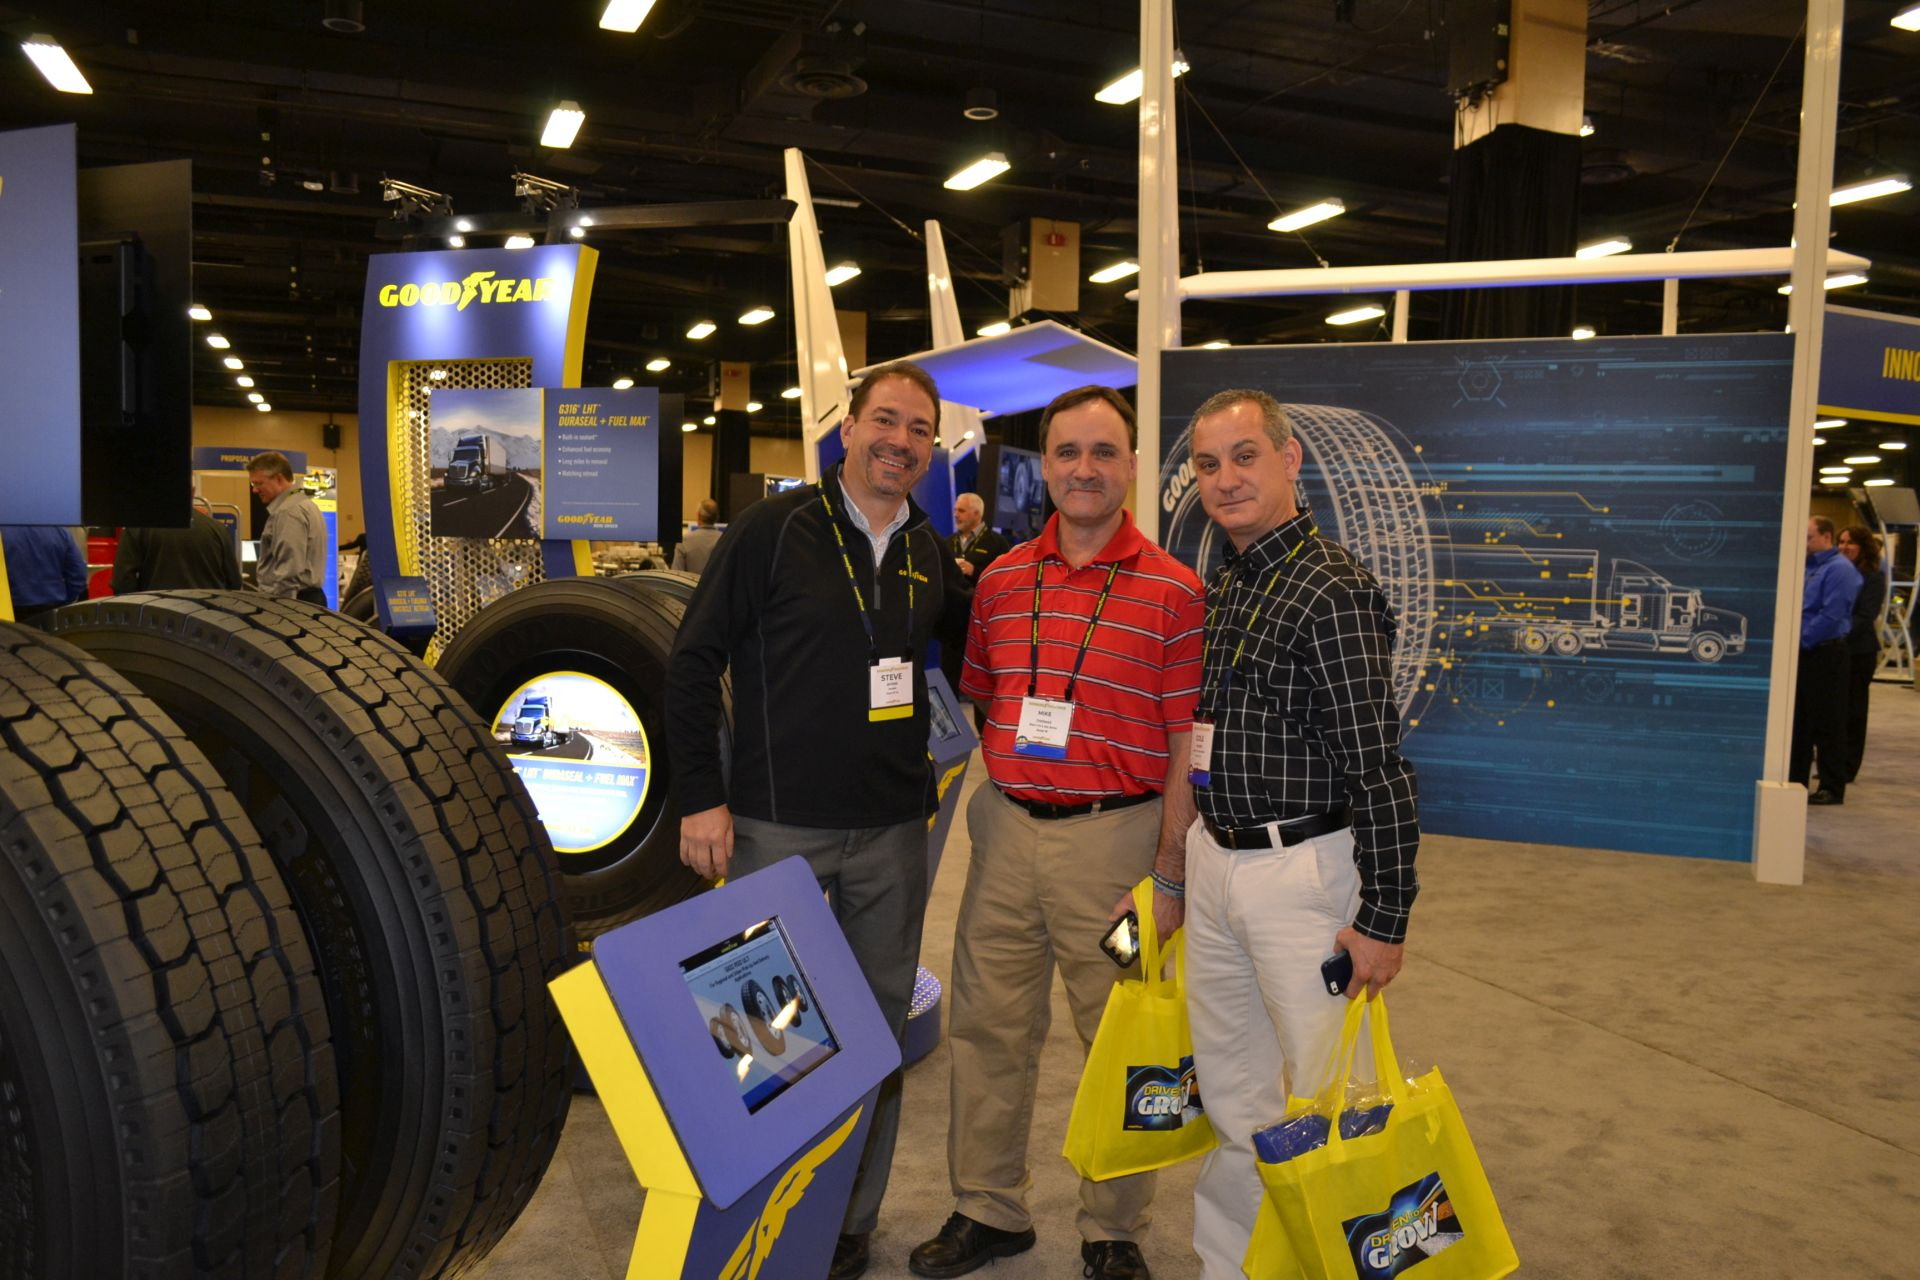 Photos: People and Products at the 2018 Goodyear Dealer Meeting